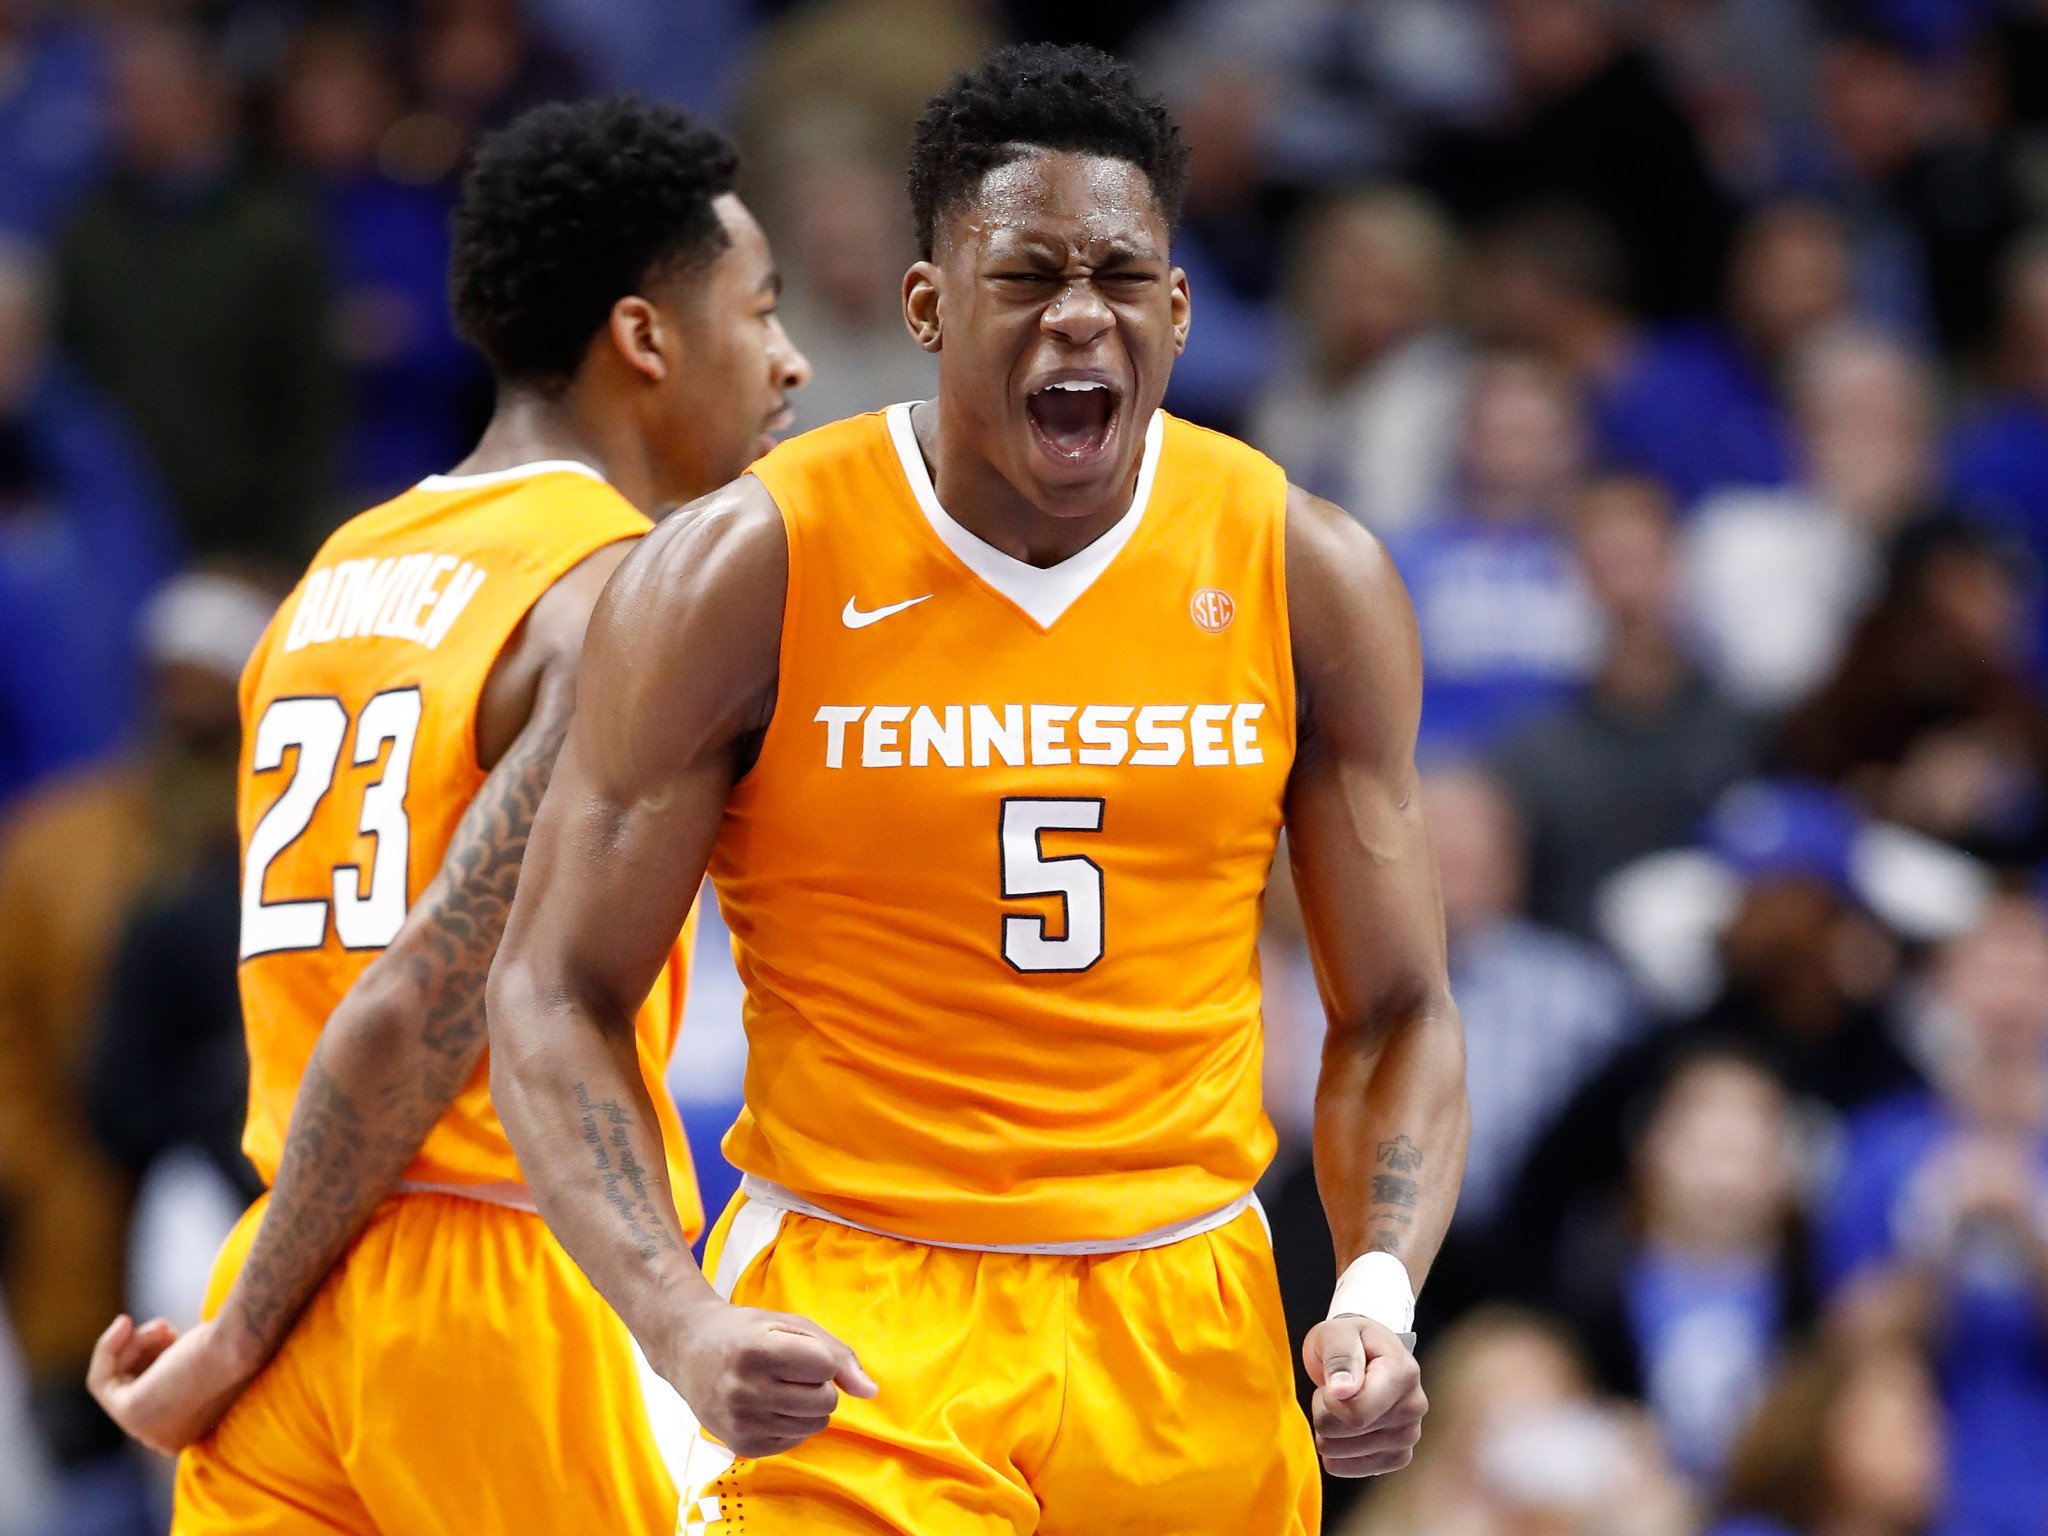 Here's why Tennessee — the men! — could easily get a No. 1 seed. https://t.co/Ot1m9CKHmT https://t.co/MQTrupxqCg